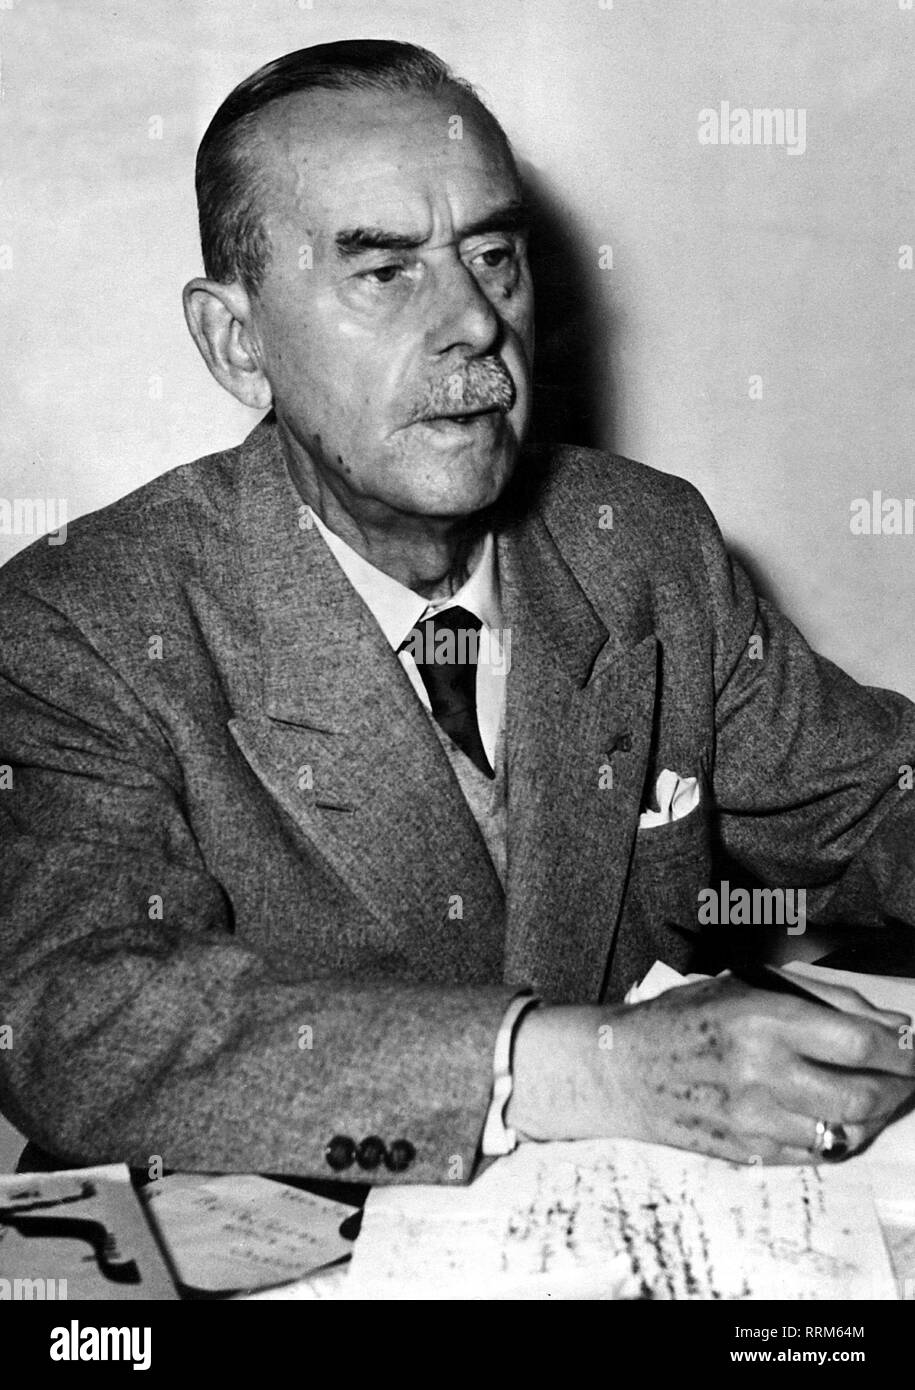 Mann, Thomas, 6.6.1875 - 12.8.1955, German author / writer, Nobel prize laureate for Literature 1929, half length, 1940s, 40s, Additional-Rights-Clearance-Info-Not-Available - Stock Image